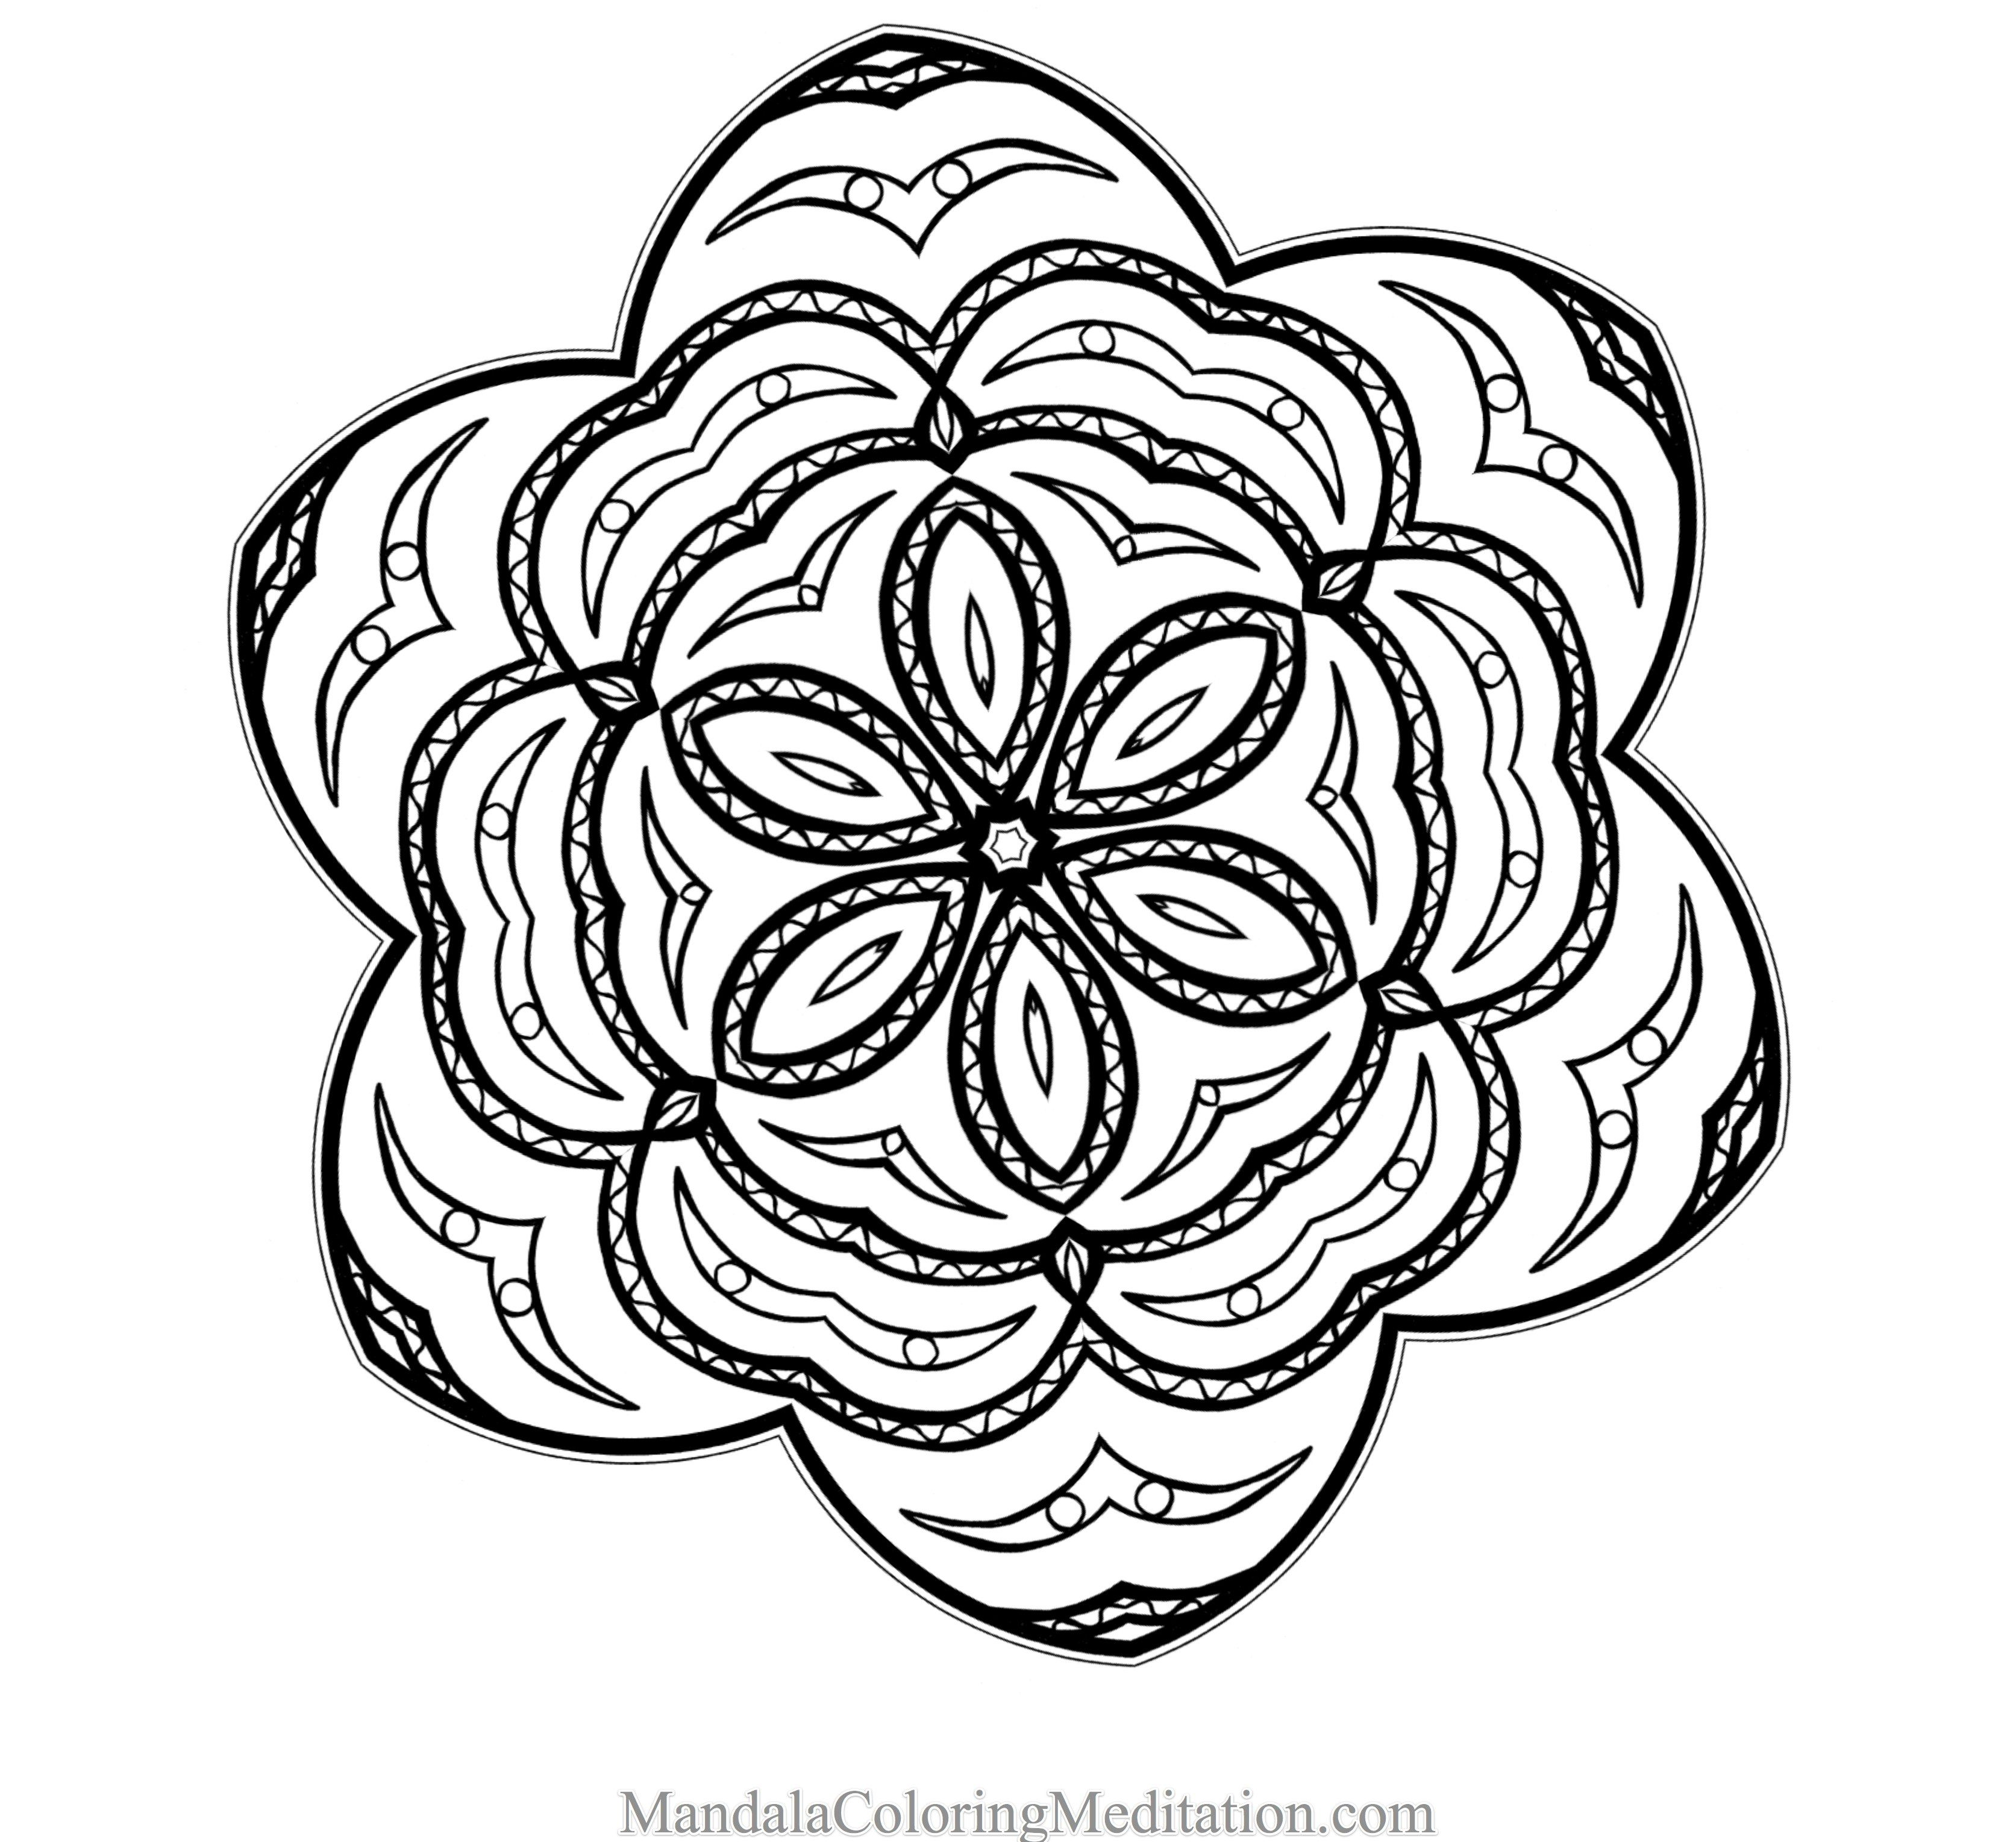 Advanced Coloring Pages Scenery - Coloring Pages For All Ages